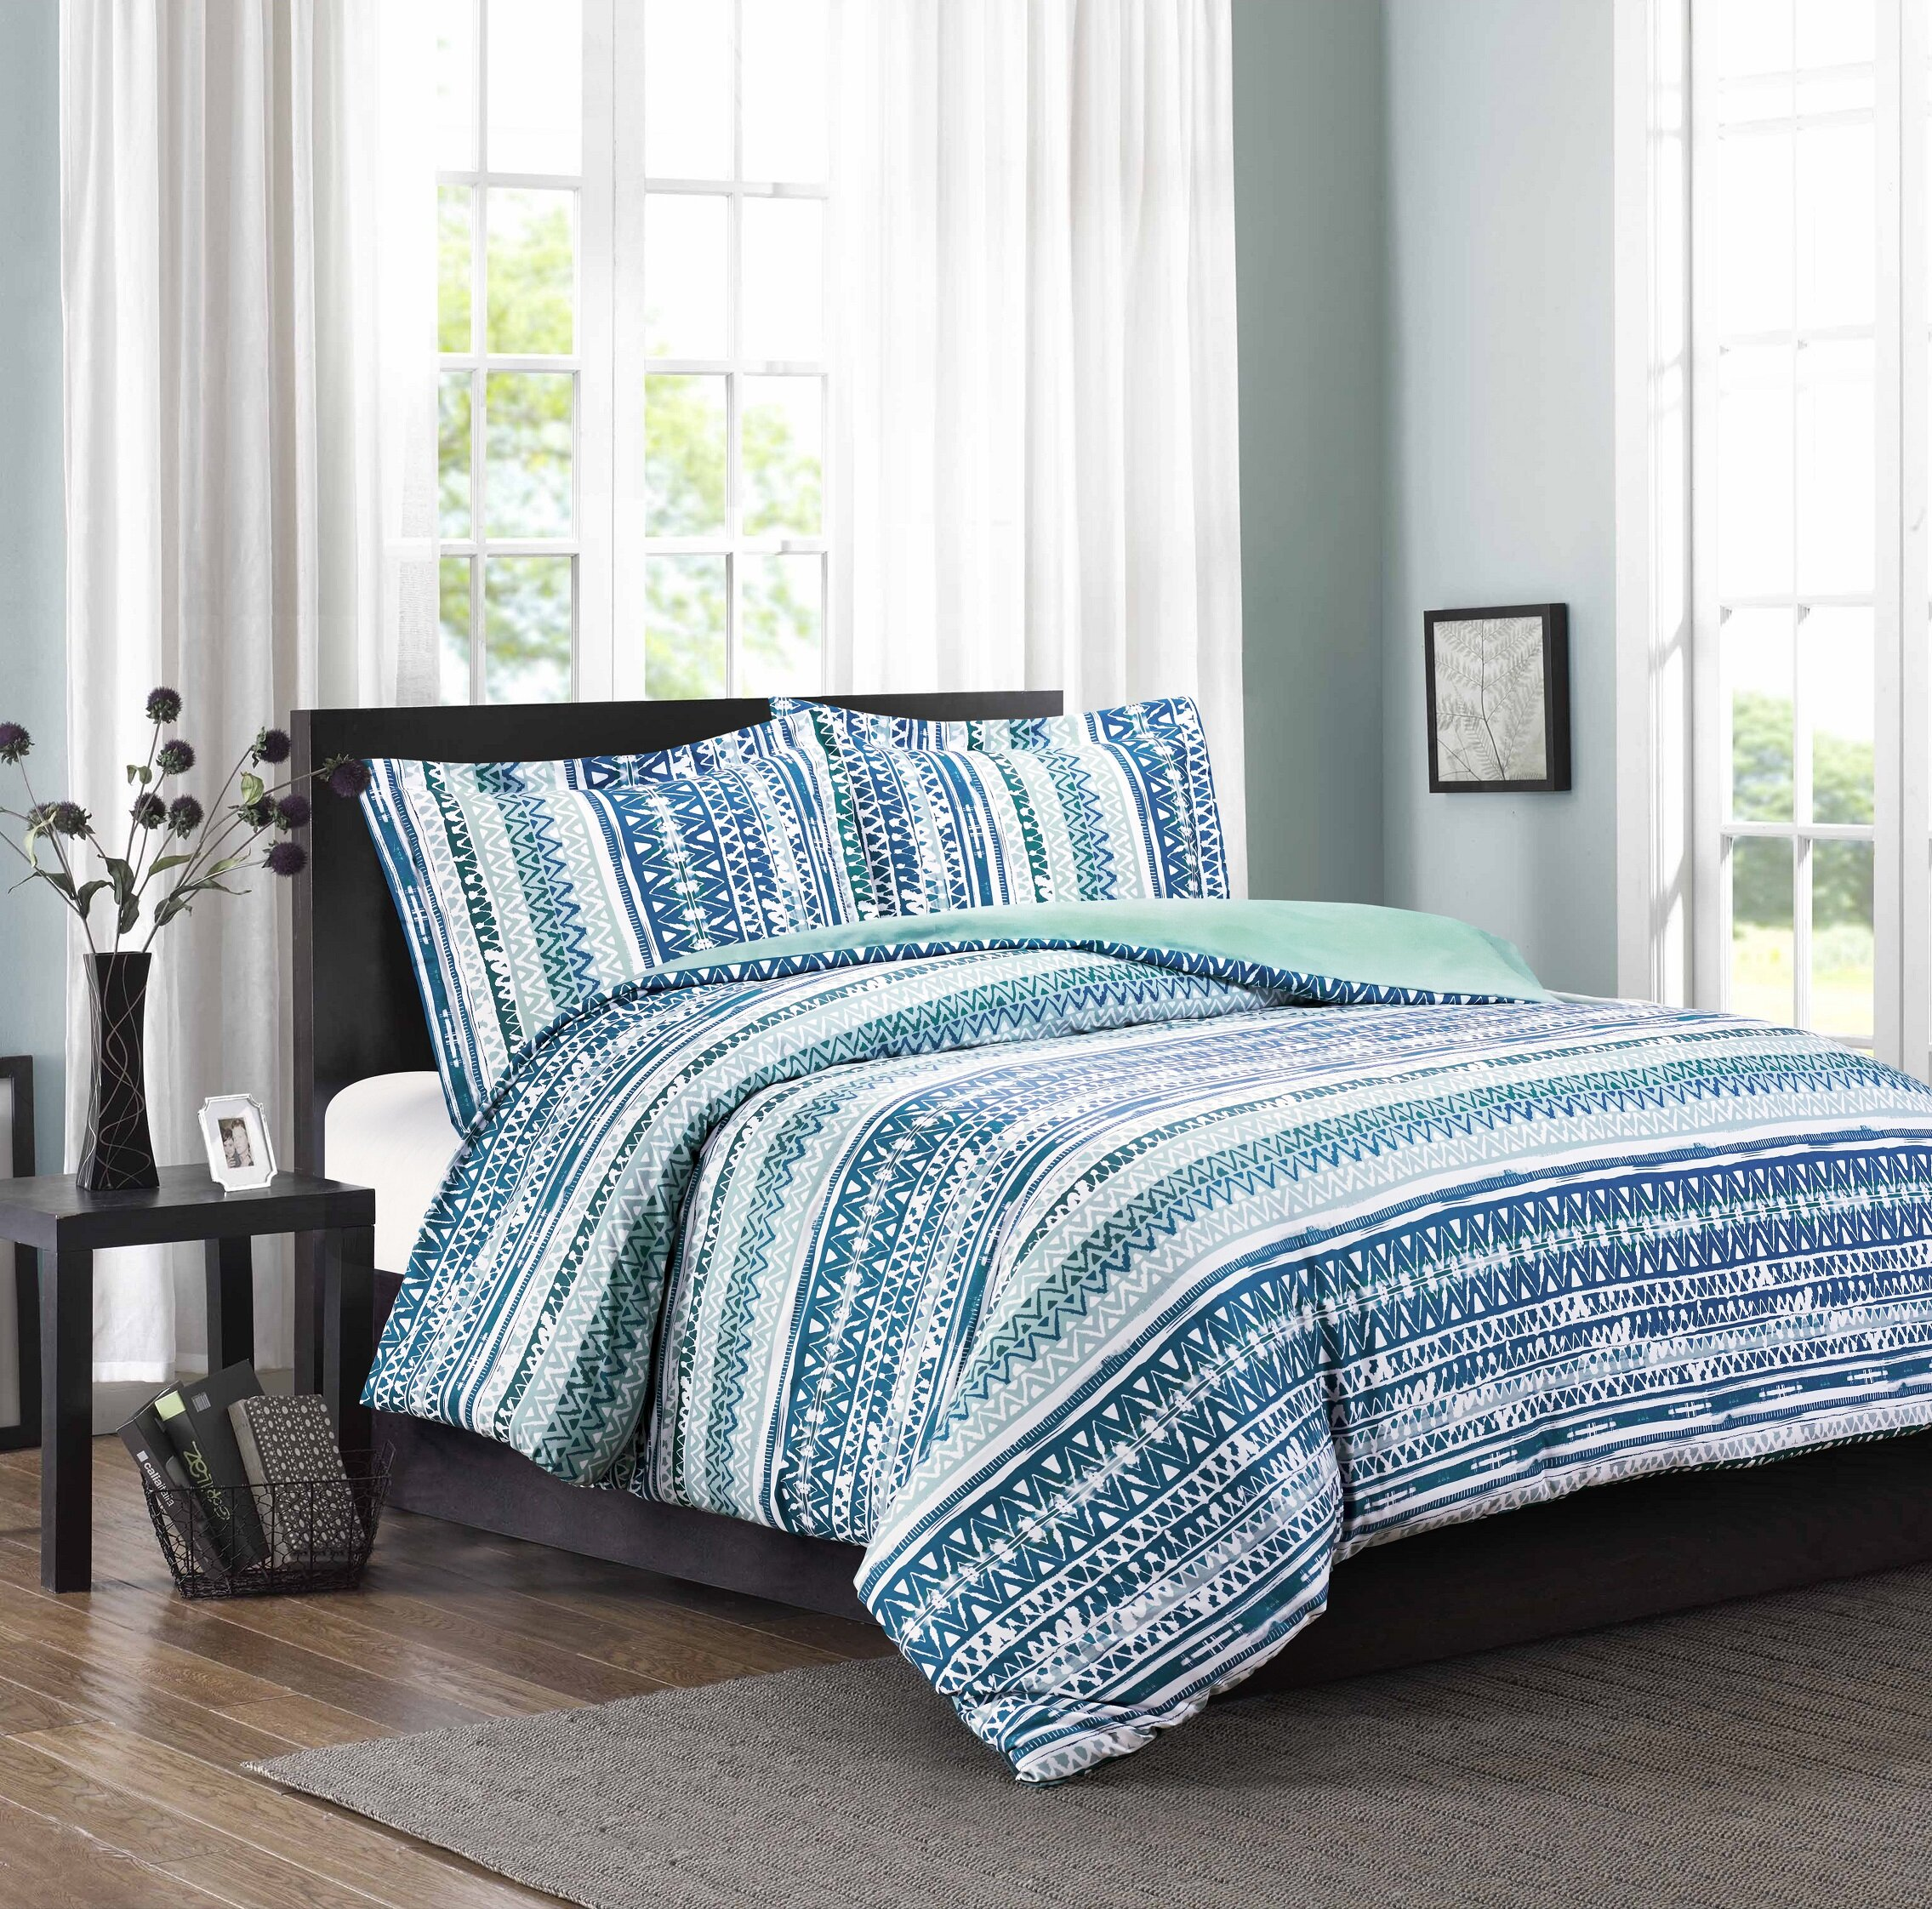 Wayfair King Size Rustic Comforters Sets You Ll Love In 2021